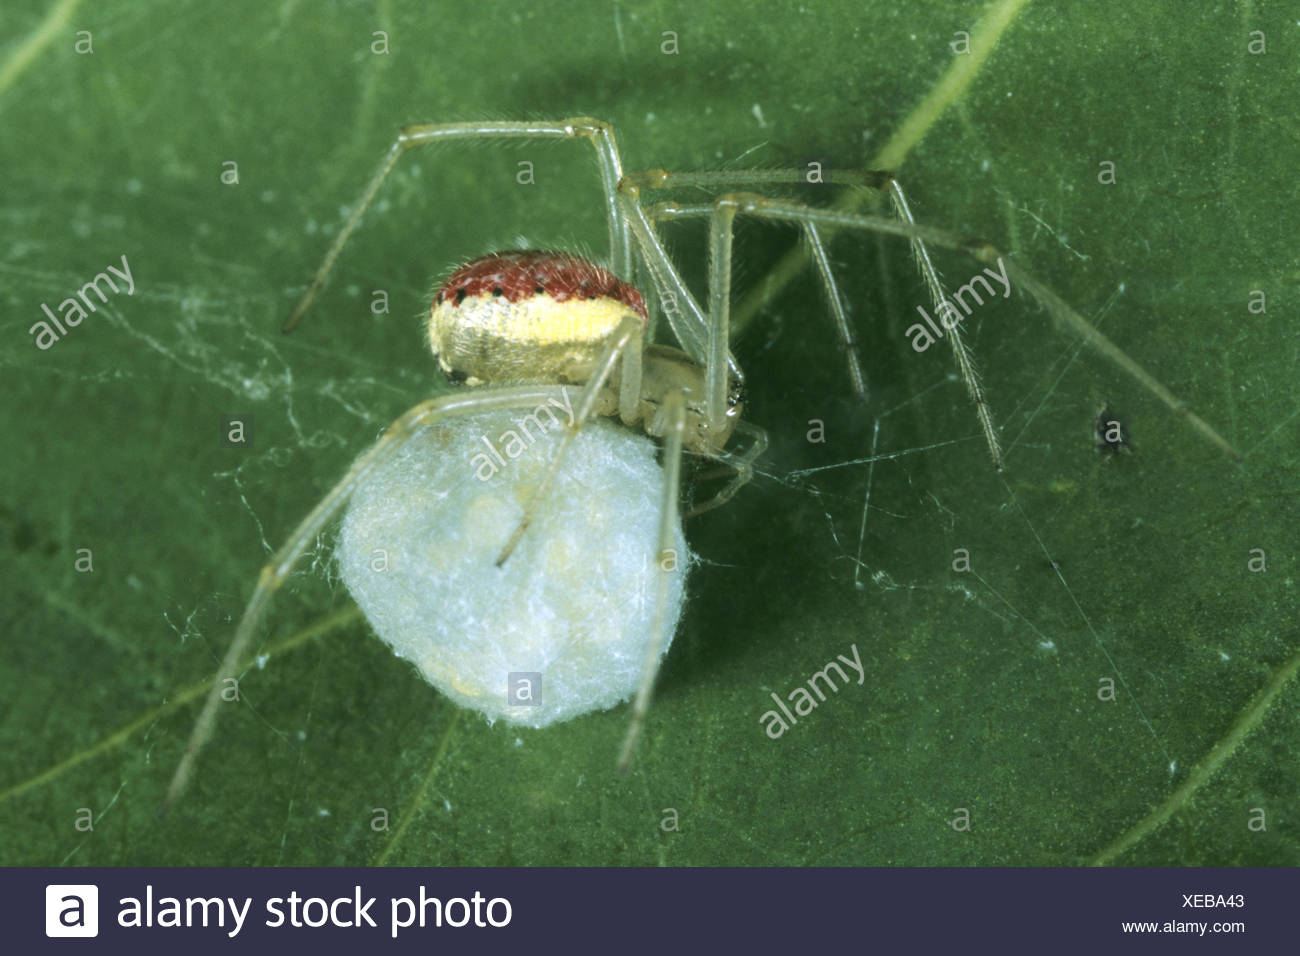 red-and-white spider (Enoplognatha ovata, Enoplognatha lineata, Theridion redimitum), female with cocoon - Stock Image